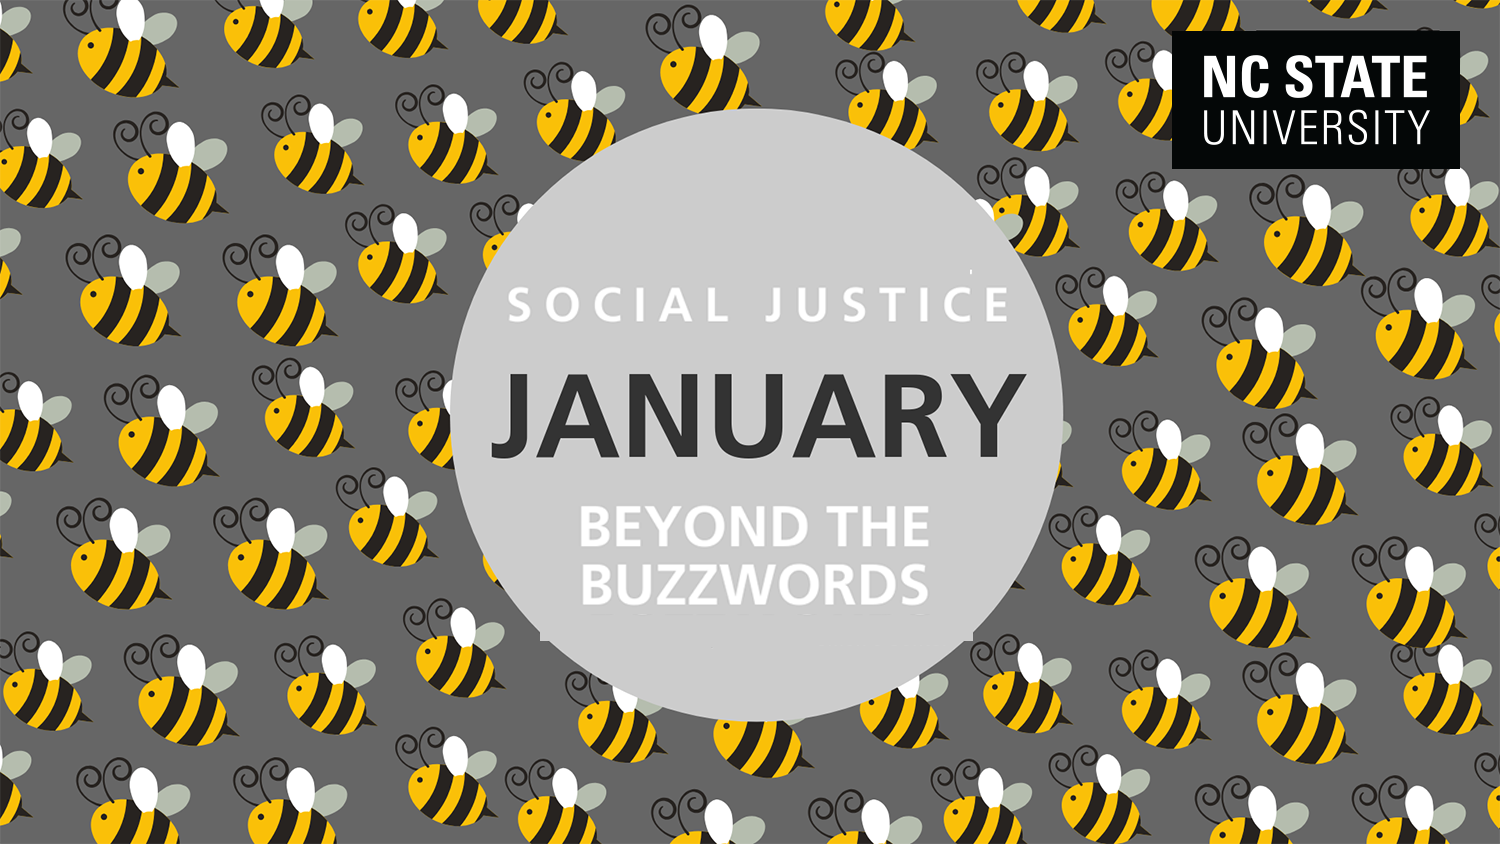 Social Justice January 2019: Beyond the Buzzwords